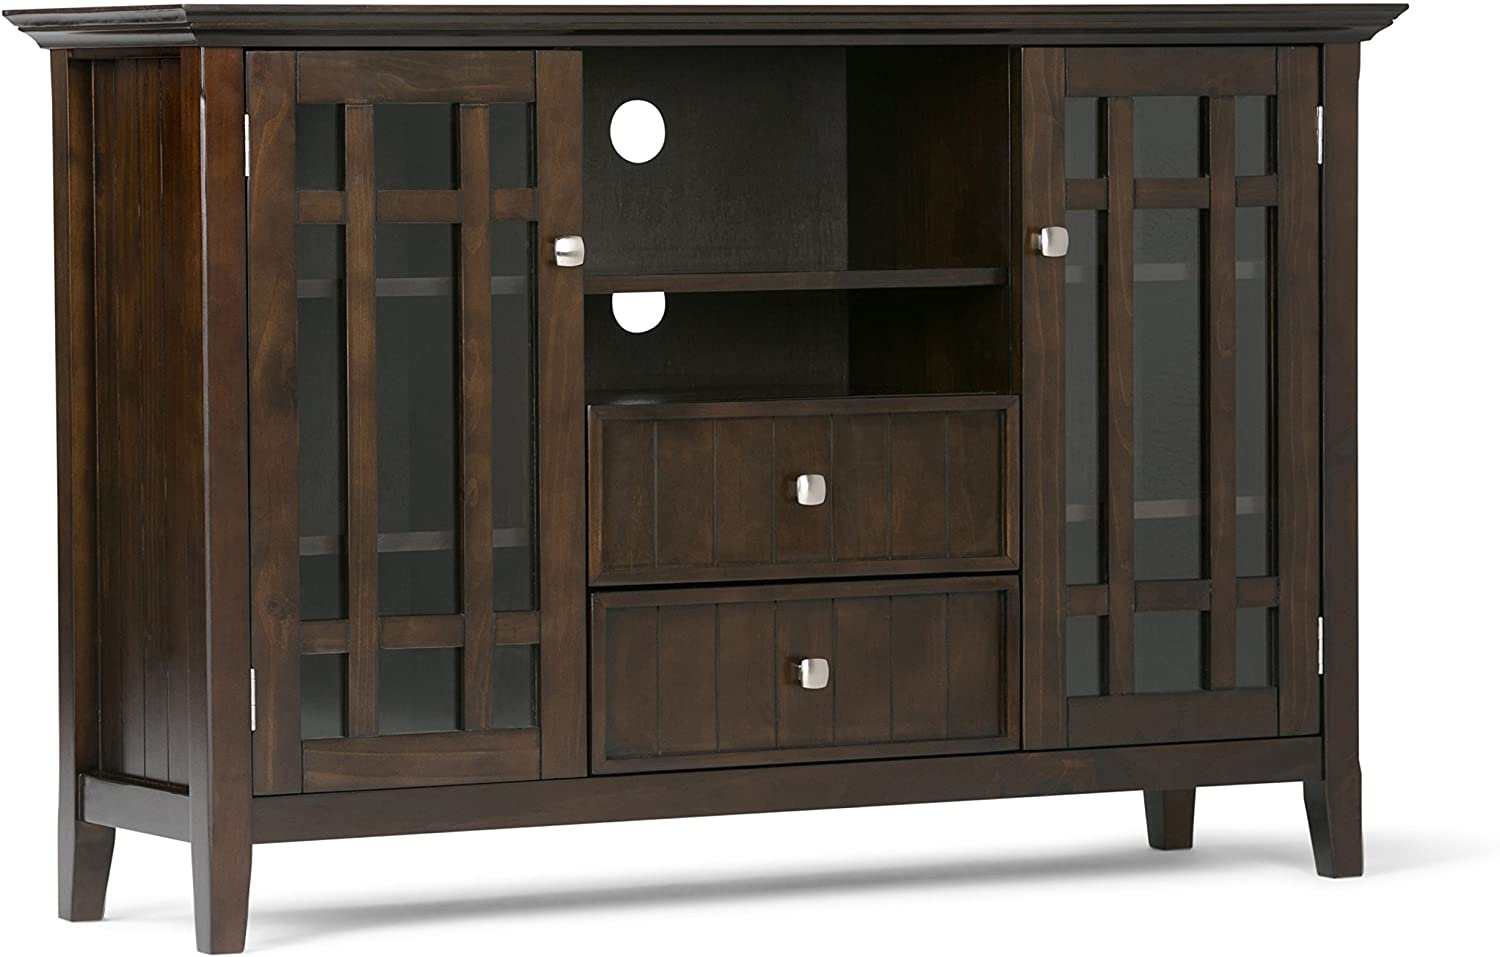 Simpli Home Bedford SOLID WOOD Universal Tall TV Media Stand, 53 inch Wide, Farmhouse Rustic, Storage Cabinet with Glass Doors, for Flat Screen TVs up to 60 inches, Dark Tobacco Brown